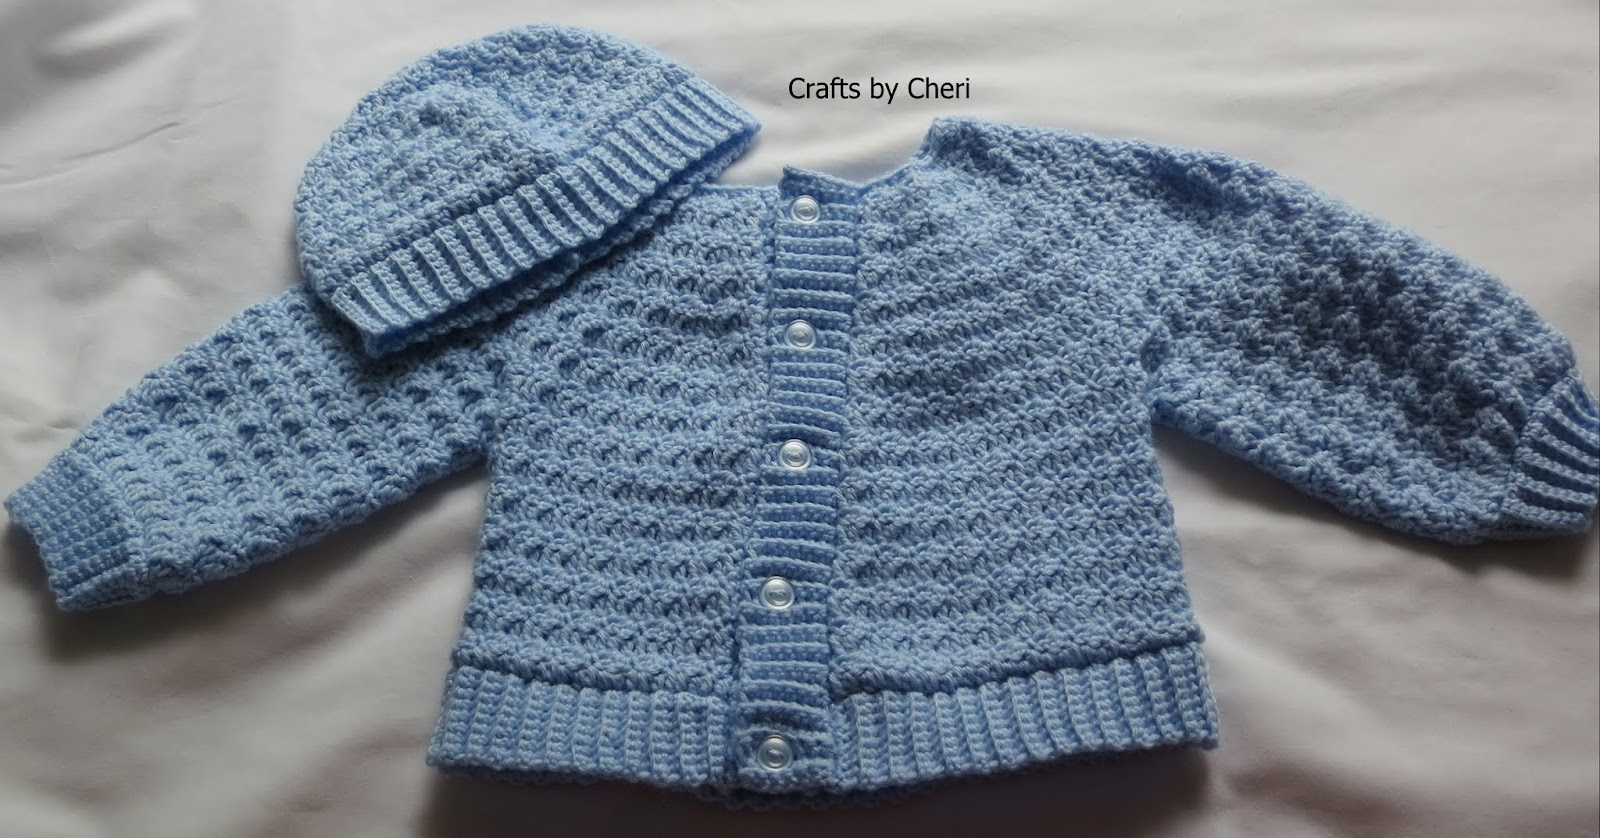 Crochet Baby Boy Sweater Free Patterns : Cheris Crochet Baby or reborn baby doll clothing or ...